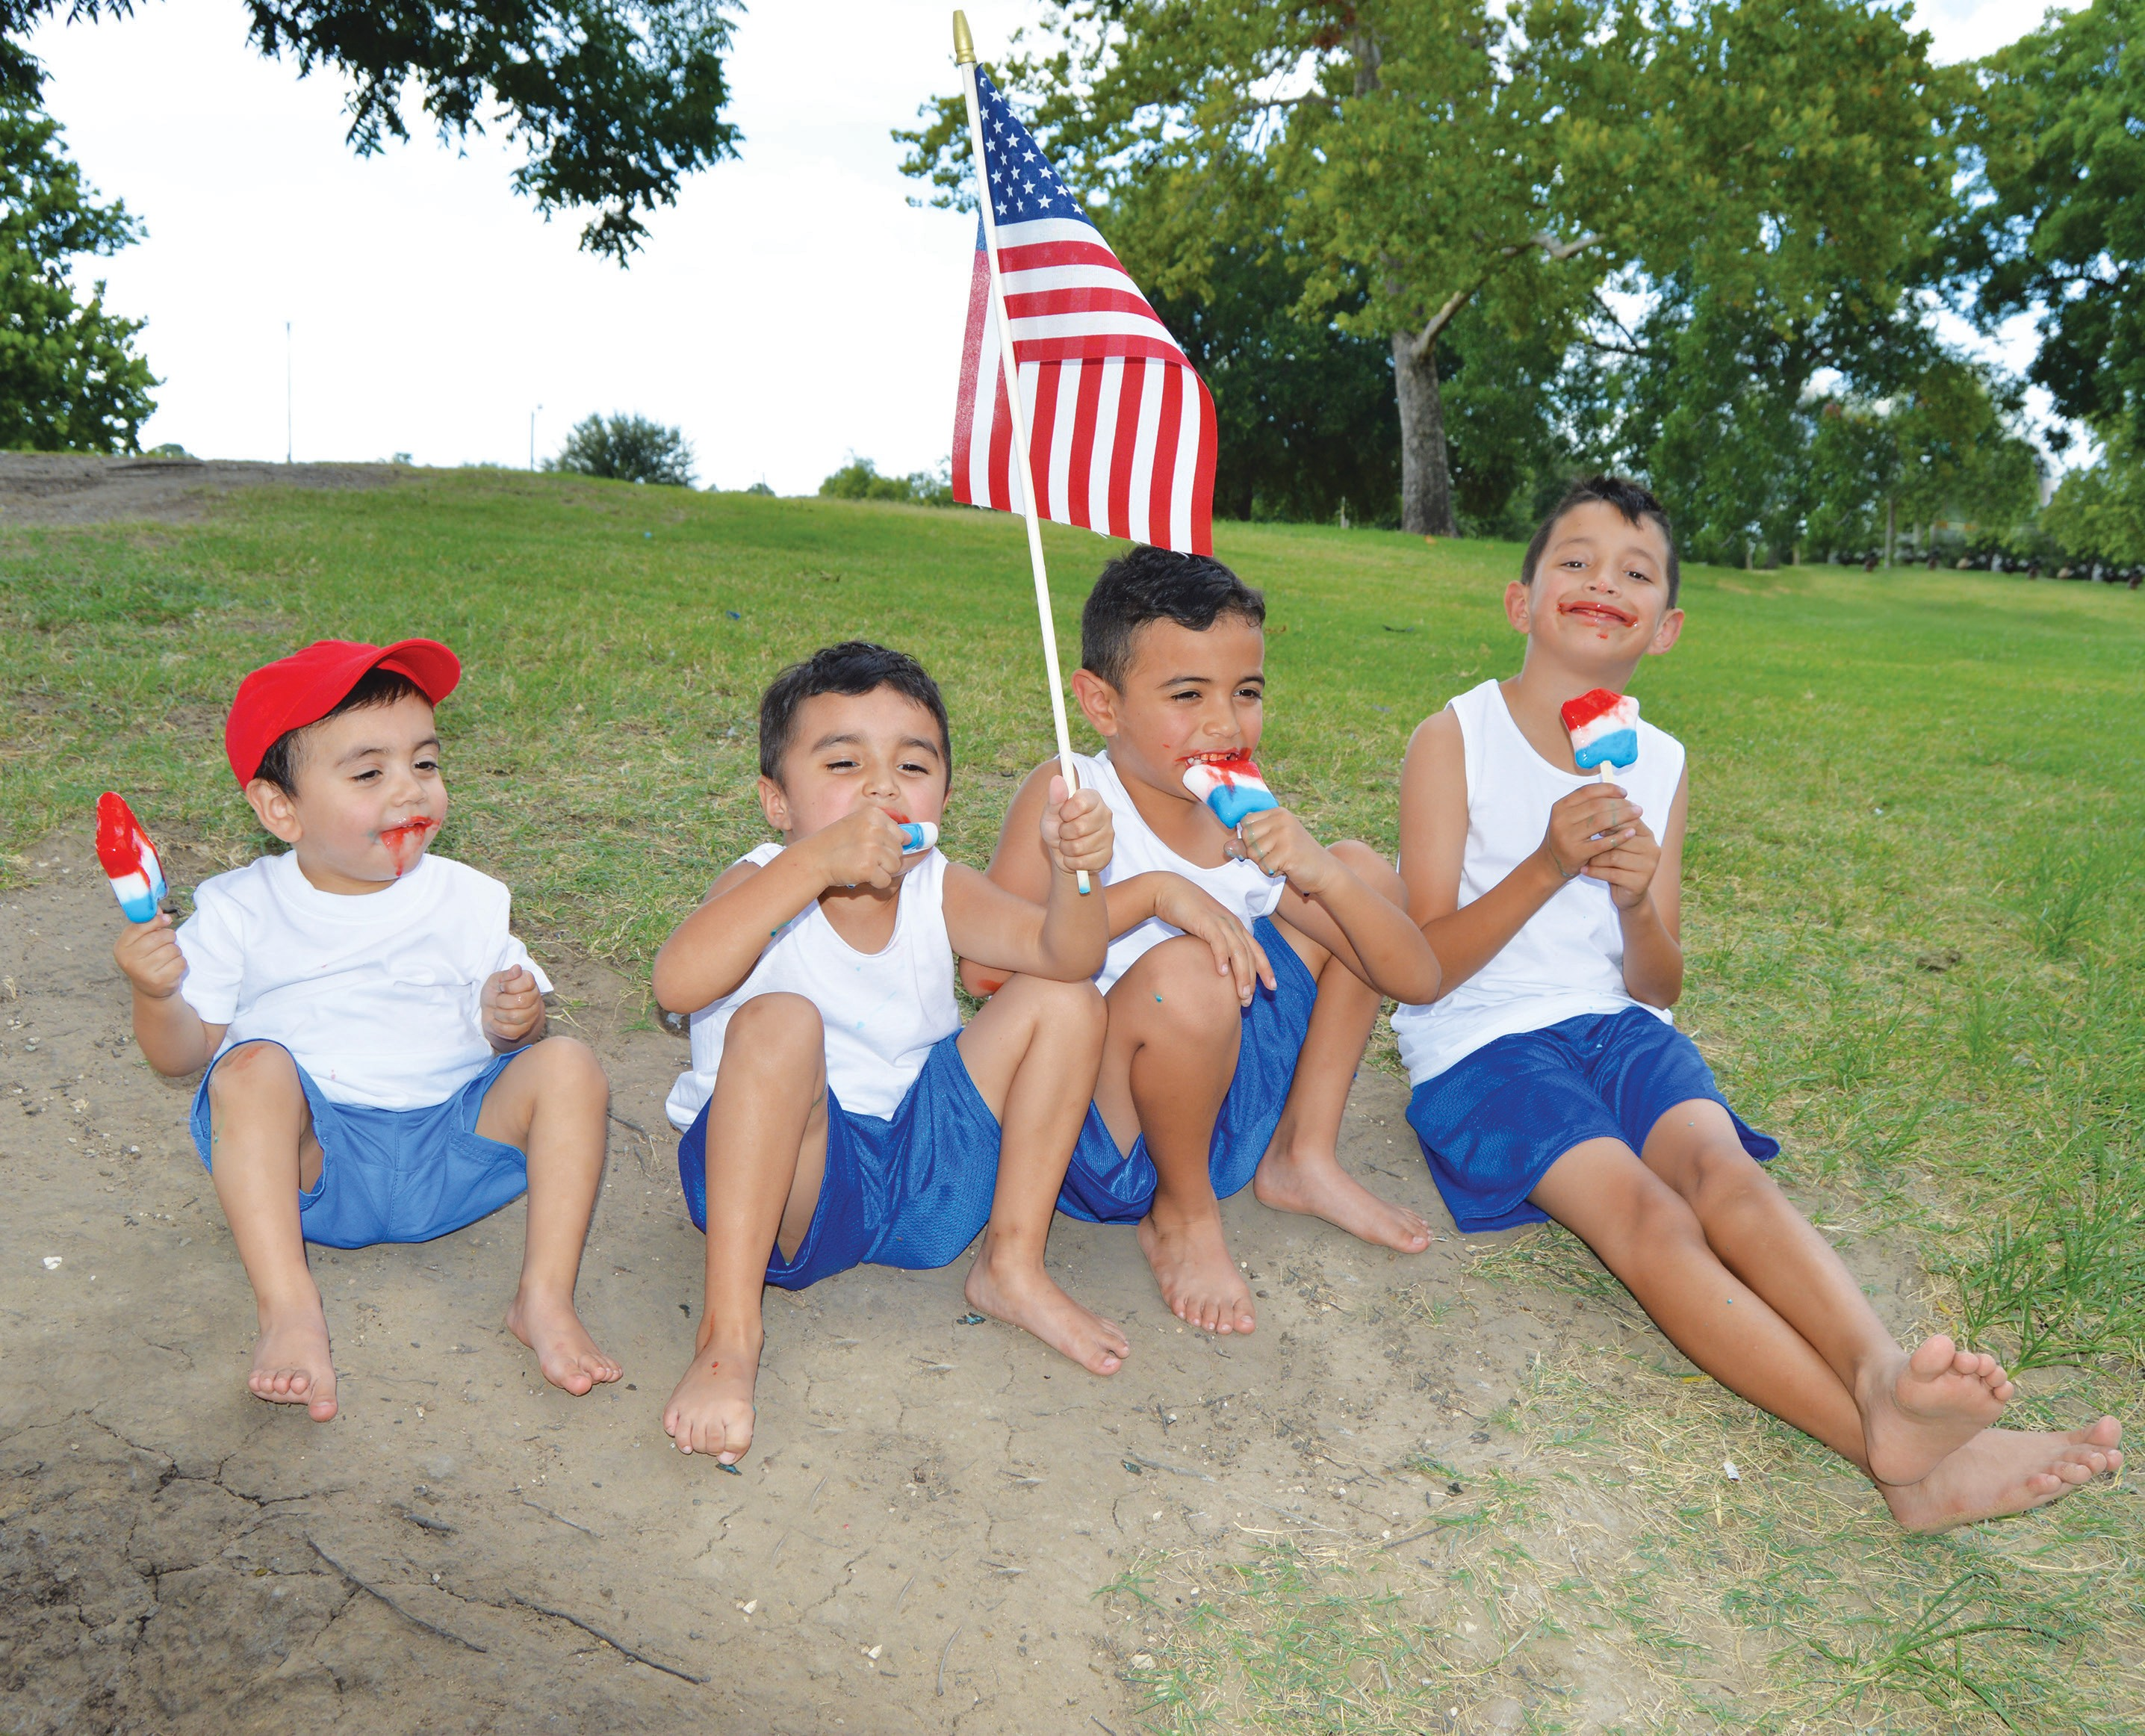 The Velasquez boys, Silas, K.C., Elijah and Zaiden gear up for Independence Day festivities by enjoying red, white and blue Starkisses from Dairy Queen at the Atascosa County River Park. Of course, the American flag was included!